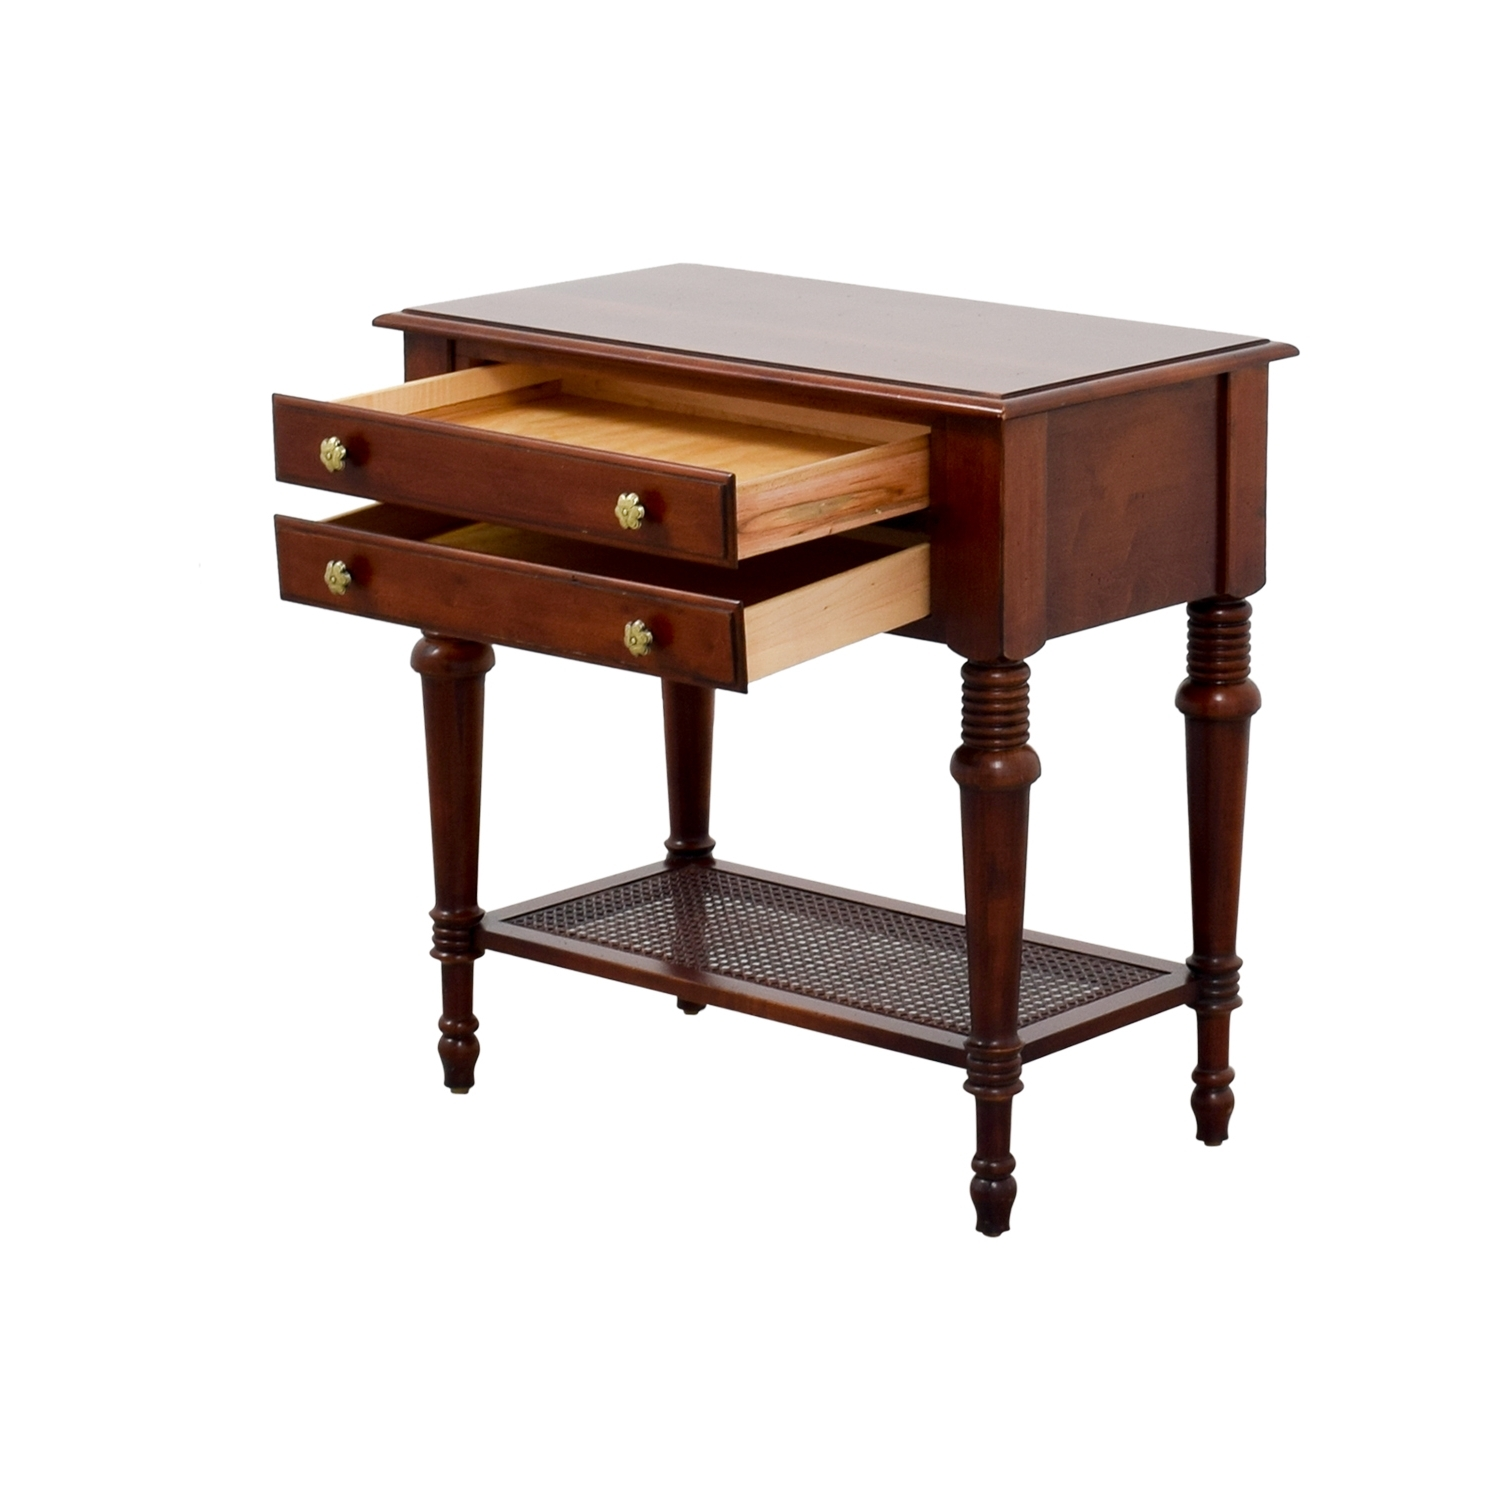 [%86% Off – Ethan Allen Ethan Allen Cayman Nightstand / Tables Intended For Popular Ethan Allen Computer Desks|Ethan Allen Computer Desks Within Most Current 86% Off – Ethan Allen Ethan Allen Cayman Nightstand / Tables|Well Liked Ethan Allen Computer Desks In 86% Off – Ethan Allen Ethan Allen Cayman Nightstand / Tables|Widely Used 86% Off – Ethan Allen Ethan Allen Cayman Nightstand / Tables For Ethan Allen Computer Desks%] (View 2 of 20)